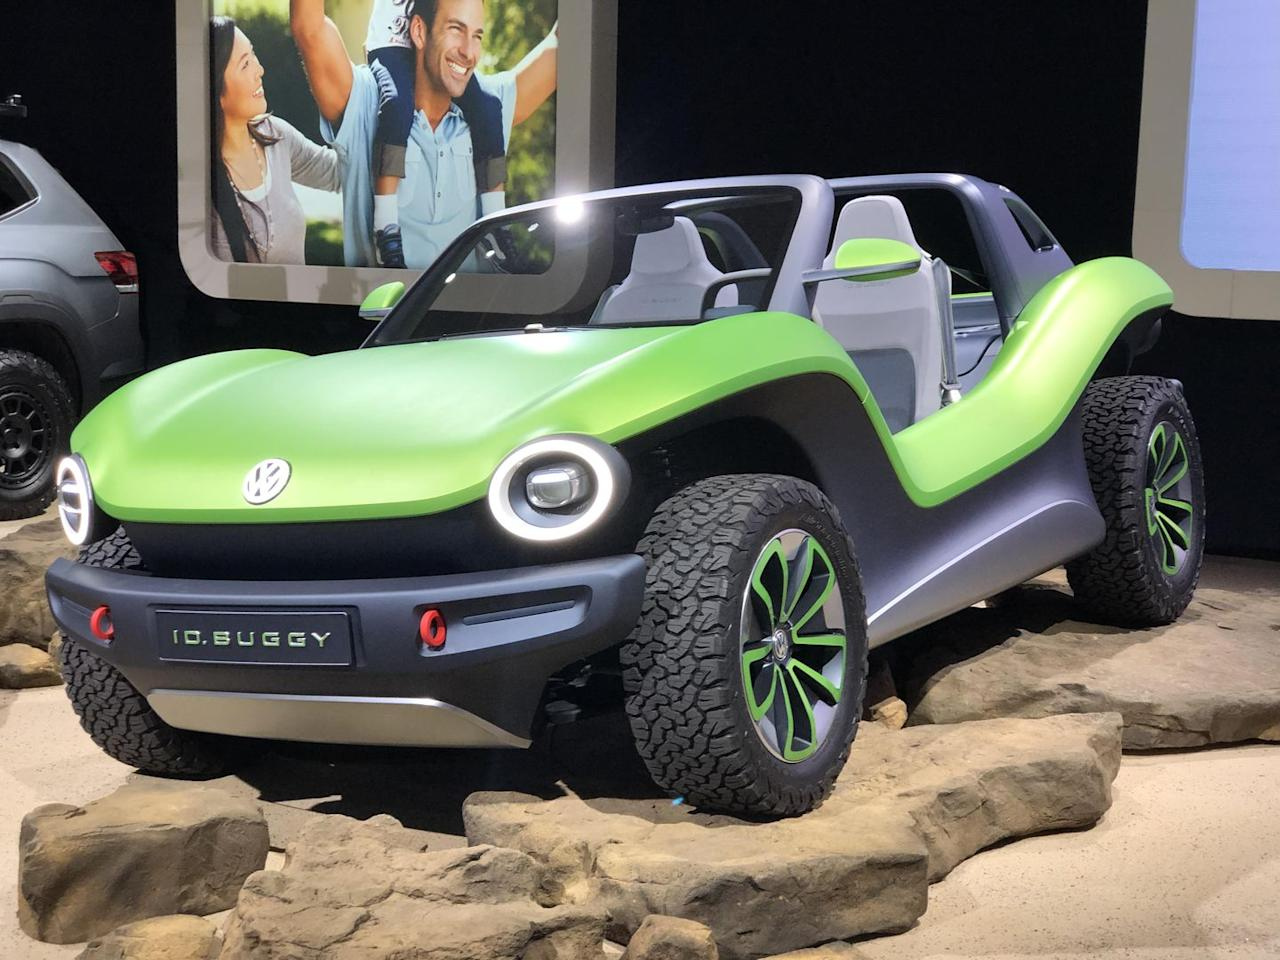 """<p>We said the Genesis Mint Concept """"might"""" be the best weird concept car of the show, and that's because it's got strong competition from the VW I.D. Buggy. Volkswagen made a chipper, open-top electric vehicle inspired by the dune buggies of the 1960s. The electric motor makes 201 hp and the top speed is limited to 99 mph. </p><p>If the I.D. Buggy's name and aesthetic feel familiar, it's because Volkwsagen's <a href=""""https://www.popularmechanics.com/cars/g2911/best-cars-north-american-auto-show/"""">concept show car of 2017</a> was the I.D. Buzz, a similarly shocking green ride that was an electric take on the classic <a href=""""https://www.popularmechanics.com/cars/trucks/a26207/volkswagen-microbus-vw-bus/"""">VW bus</a>. </p>"""